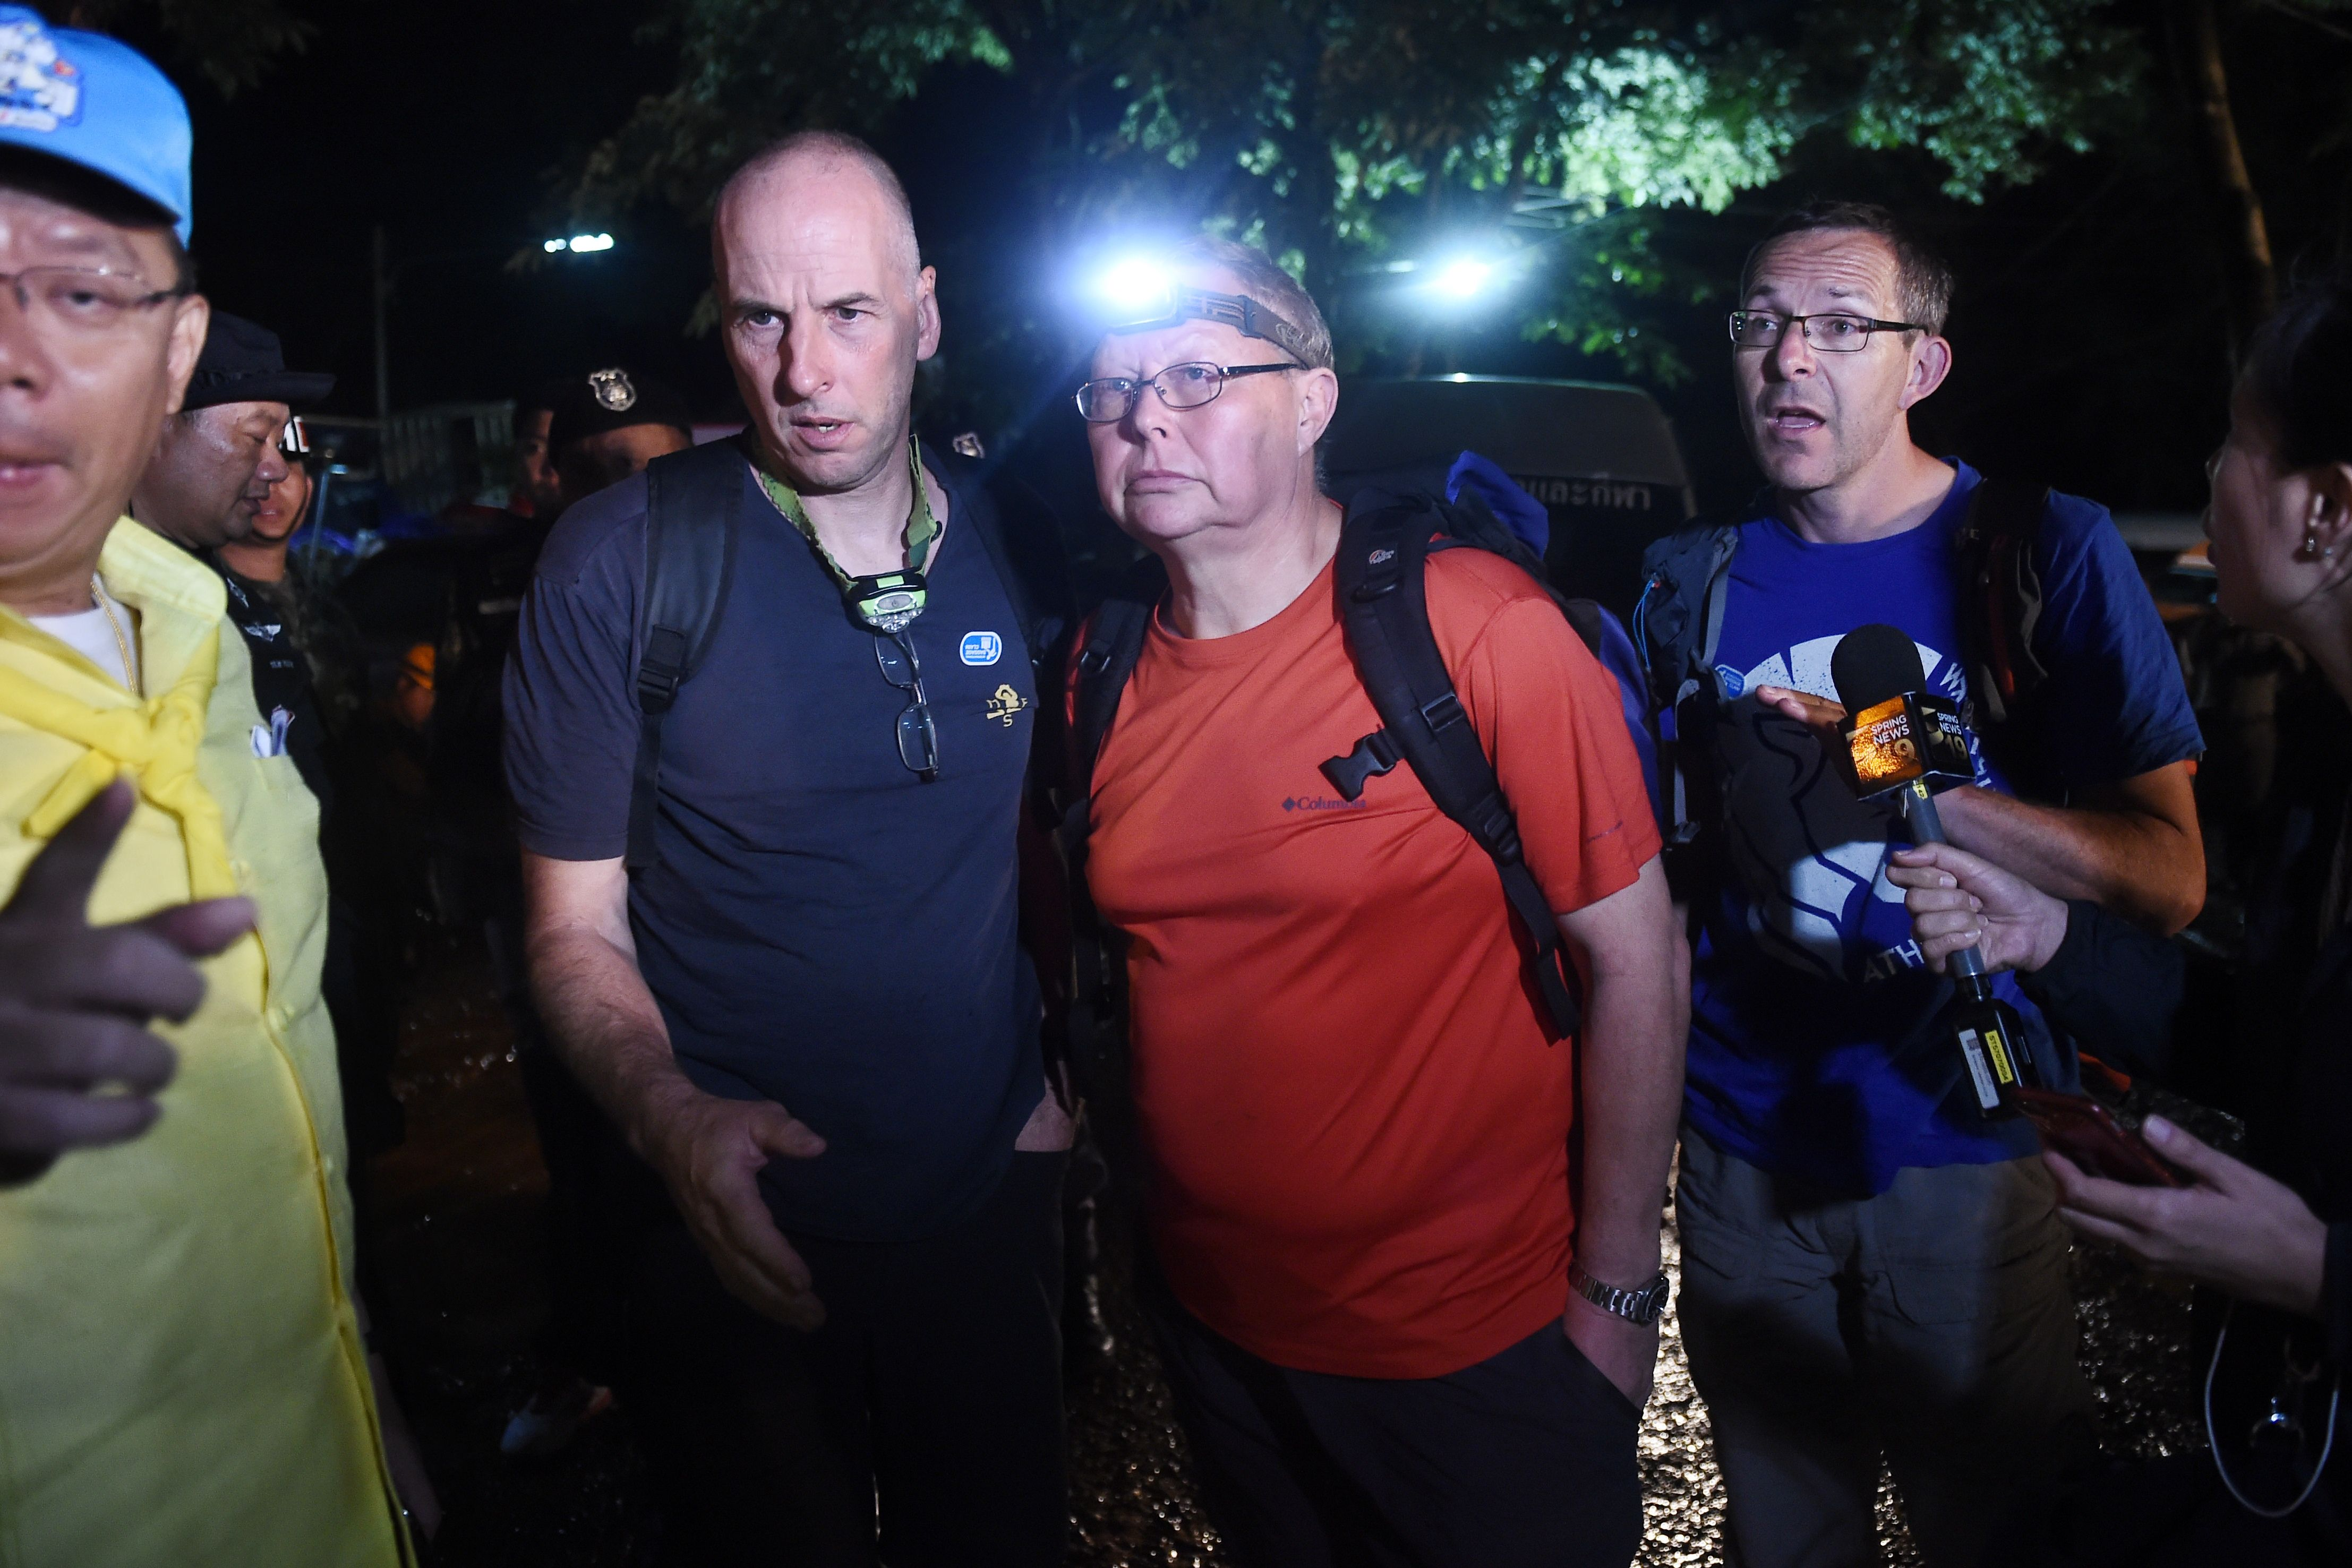 Three British cave-divers, Richard William Stanton (2nd-L), Robert Charles Harper (3rd-L) and John Volanthen (R) near the Tham Luang cave in Chiang Rai on June 27, 2018.